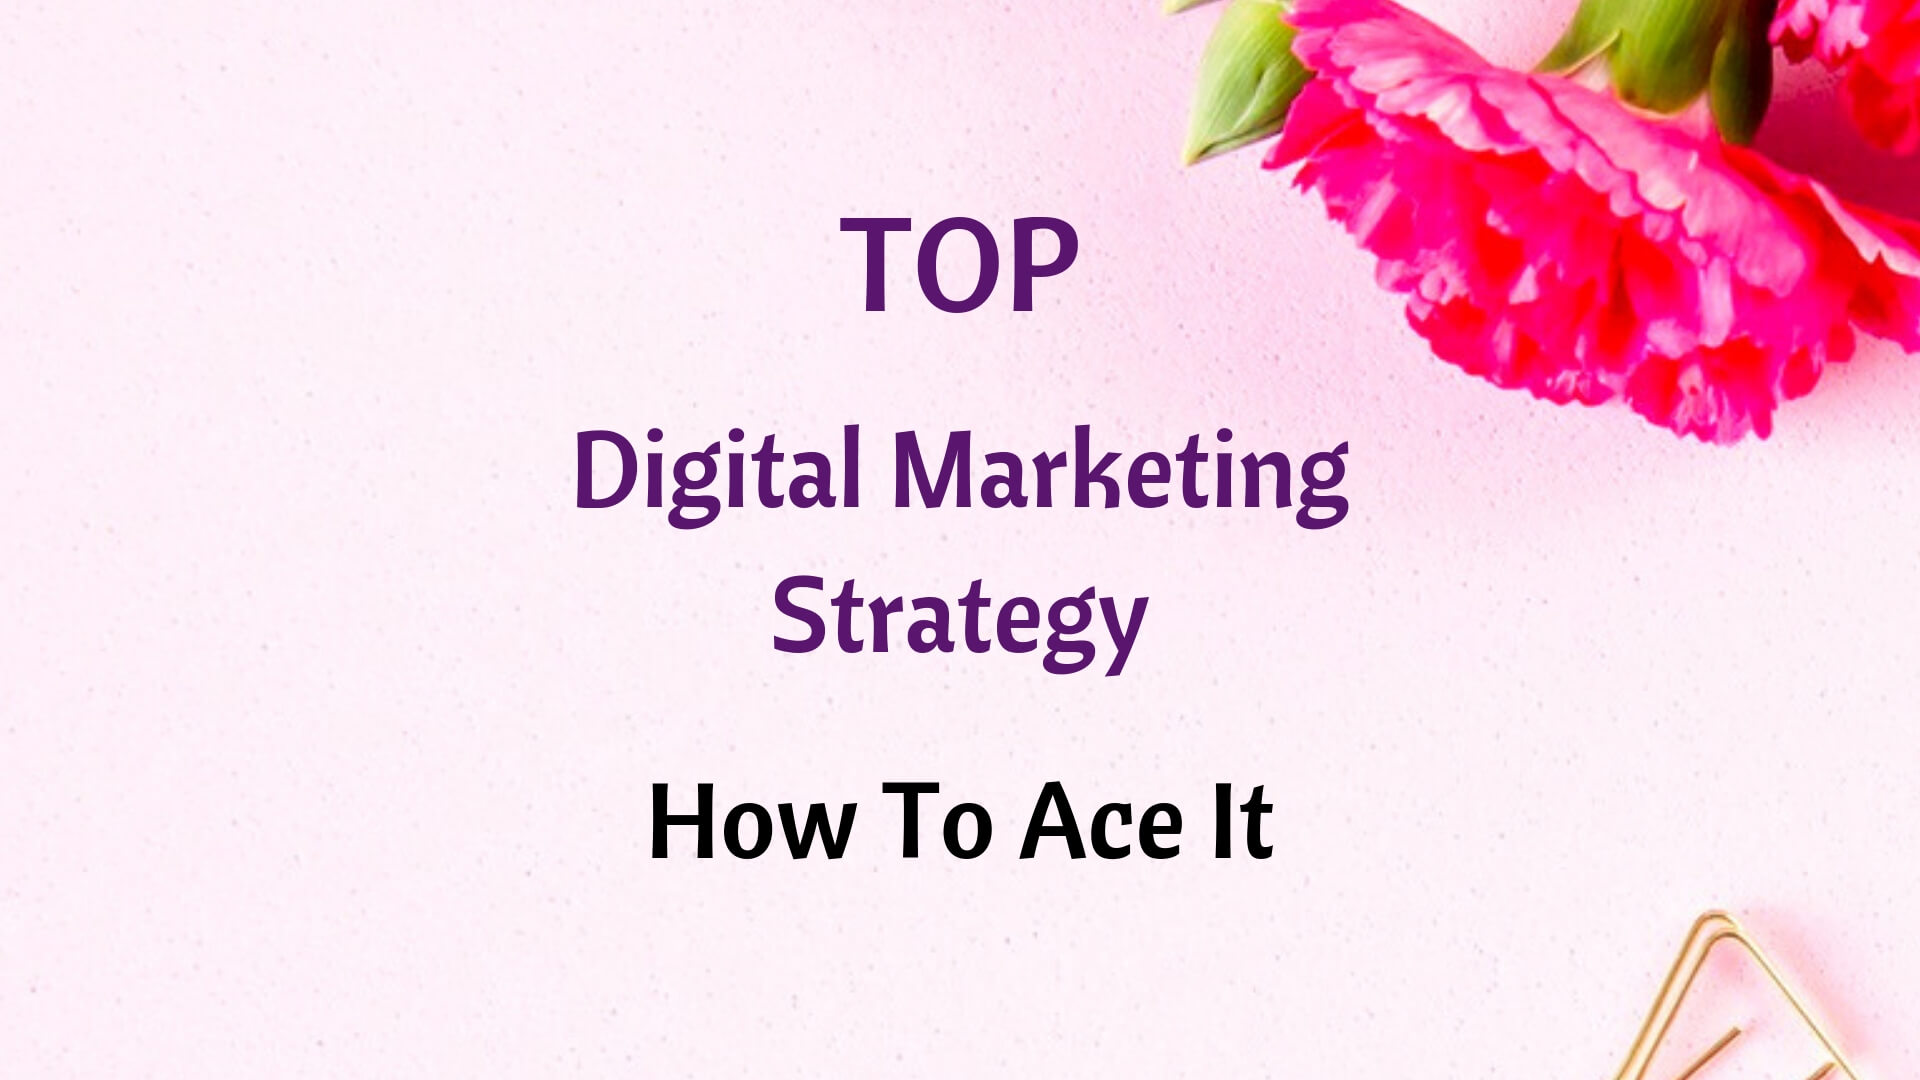 Top Digital Marketing Strategy - How To Ace It